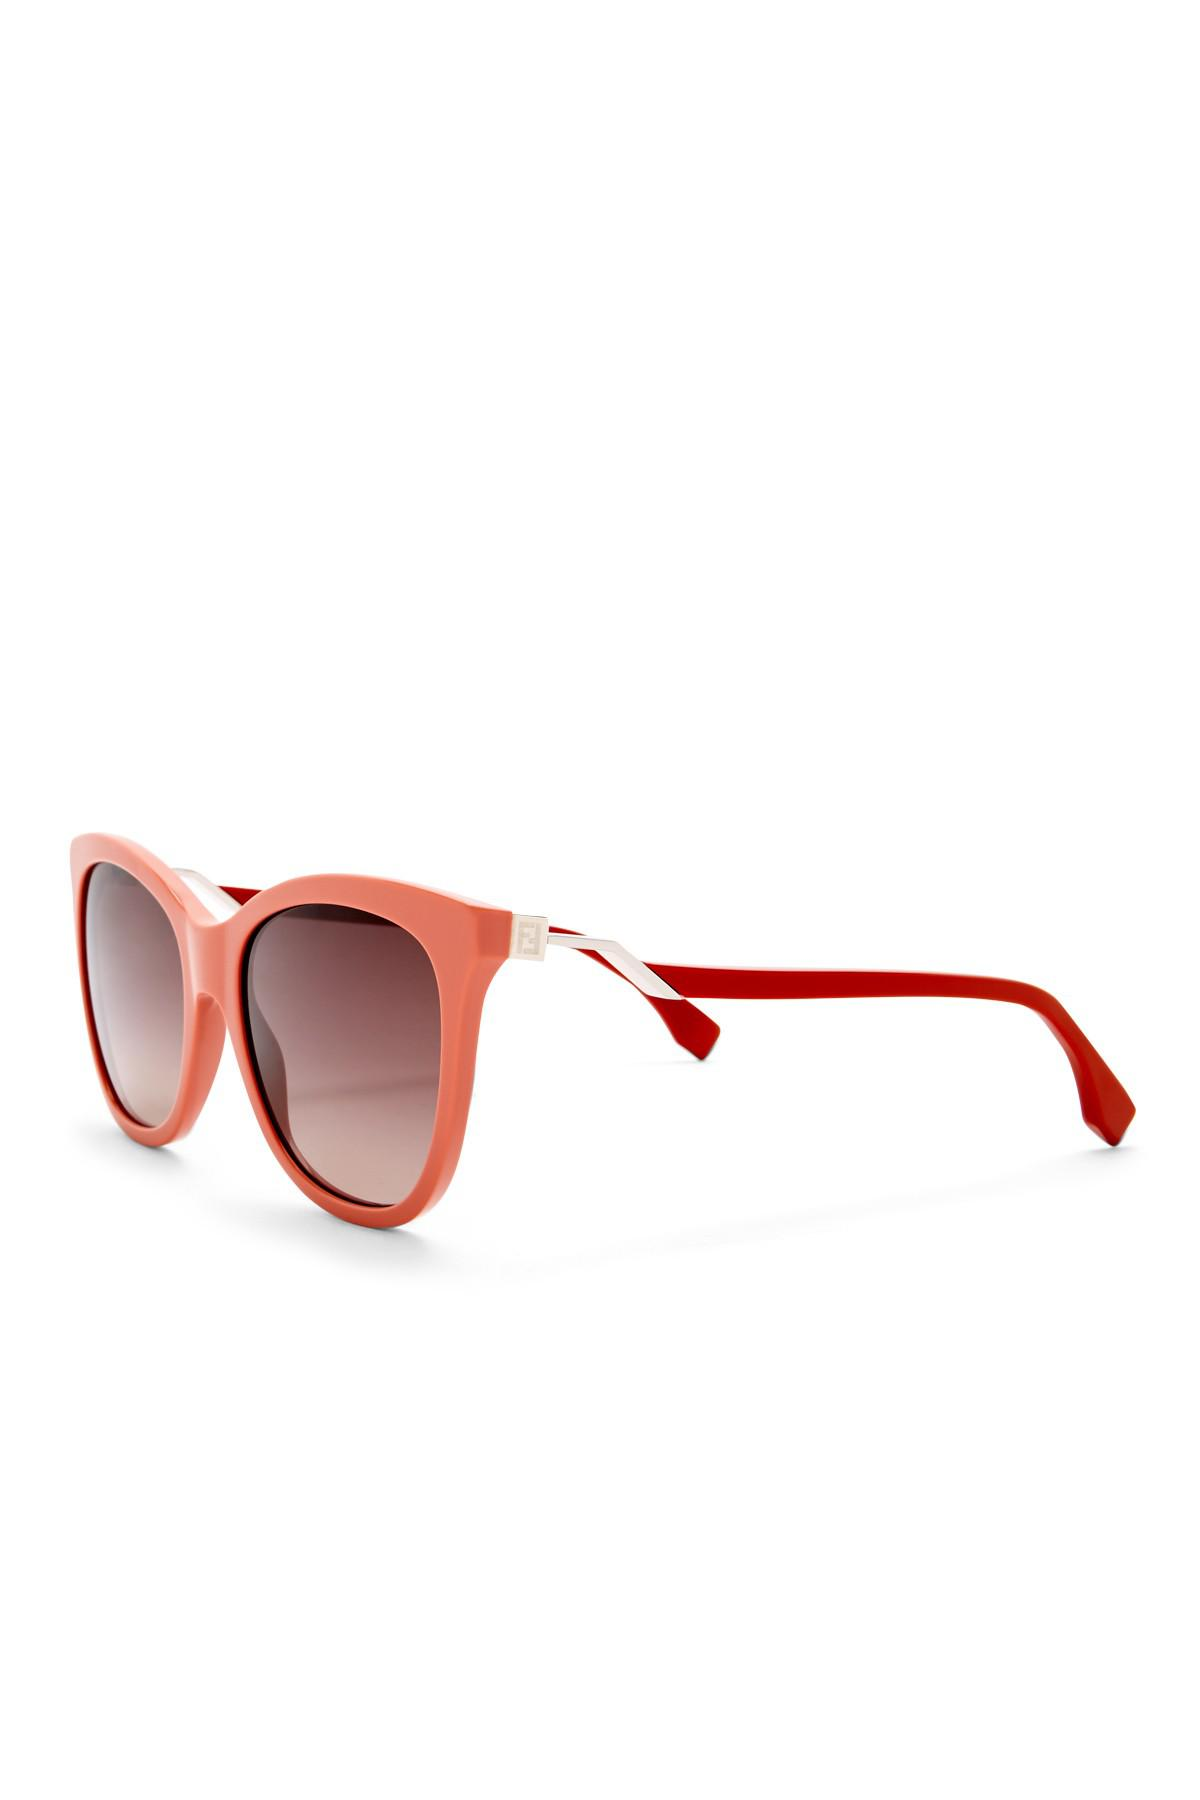 Womens Ff 0200/S Xq Sunglasses, Pink Red, 55 Fendi